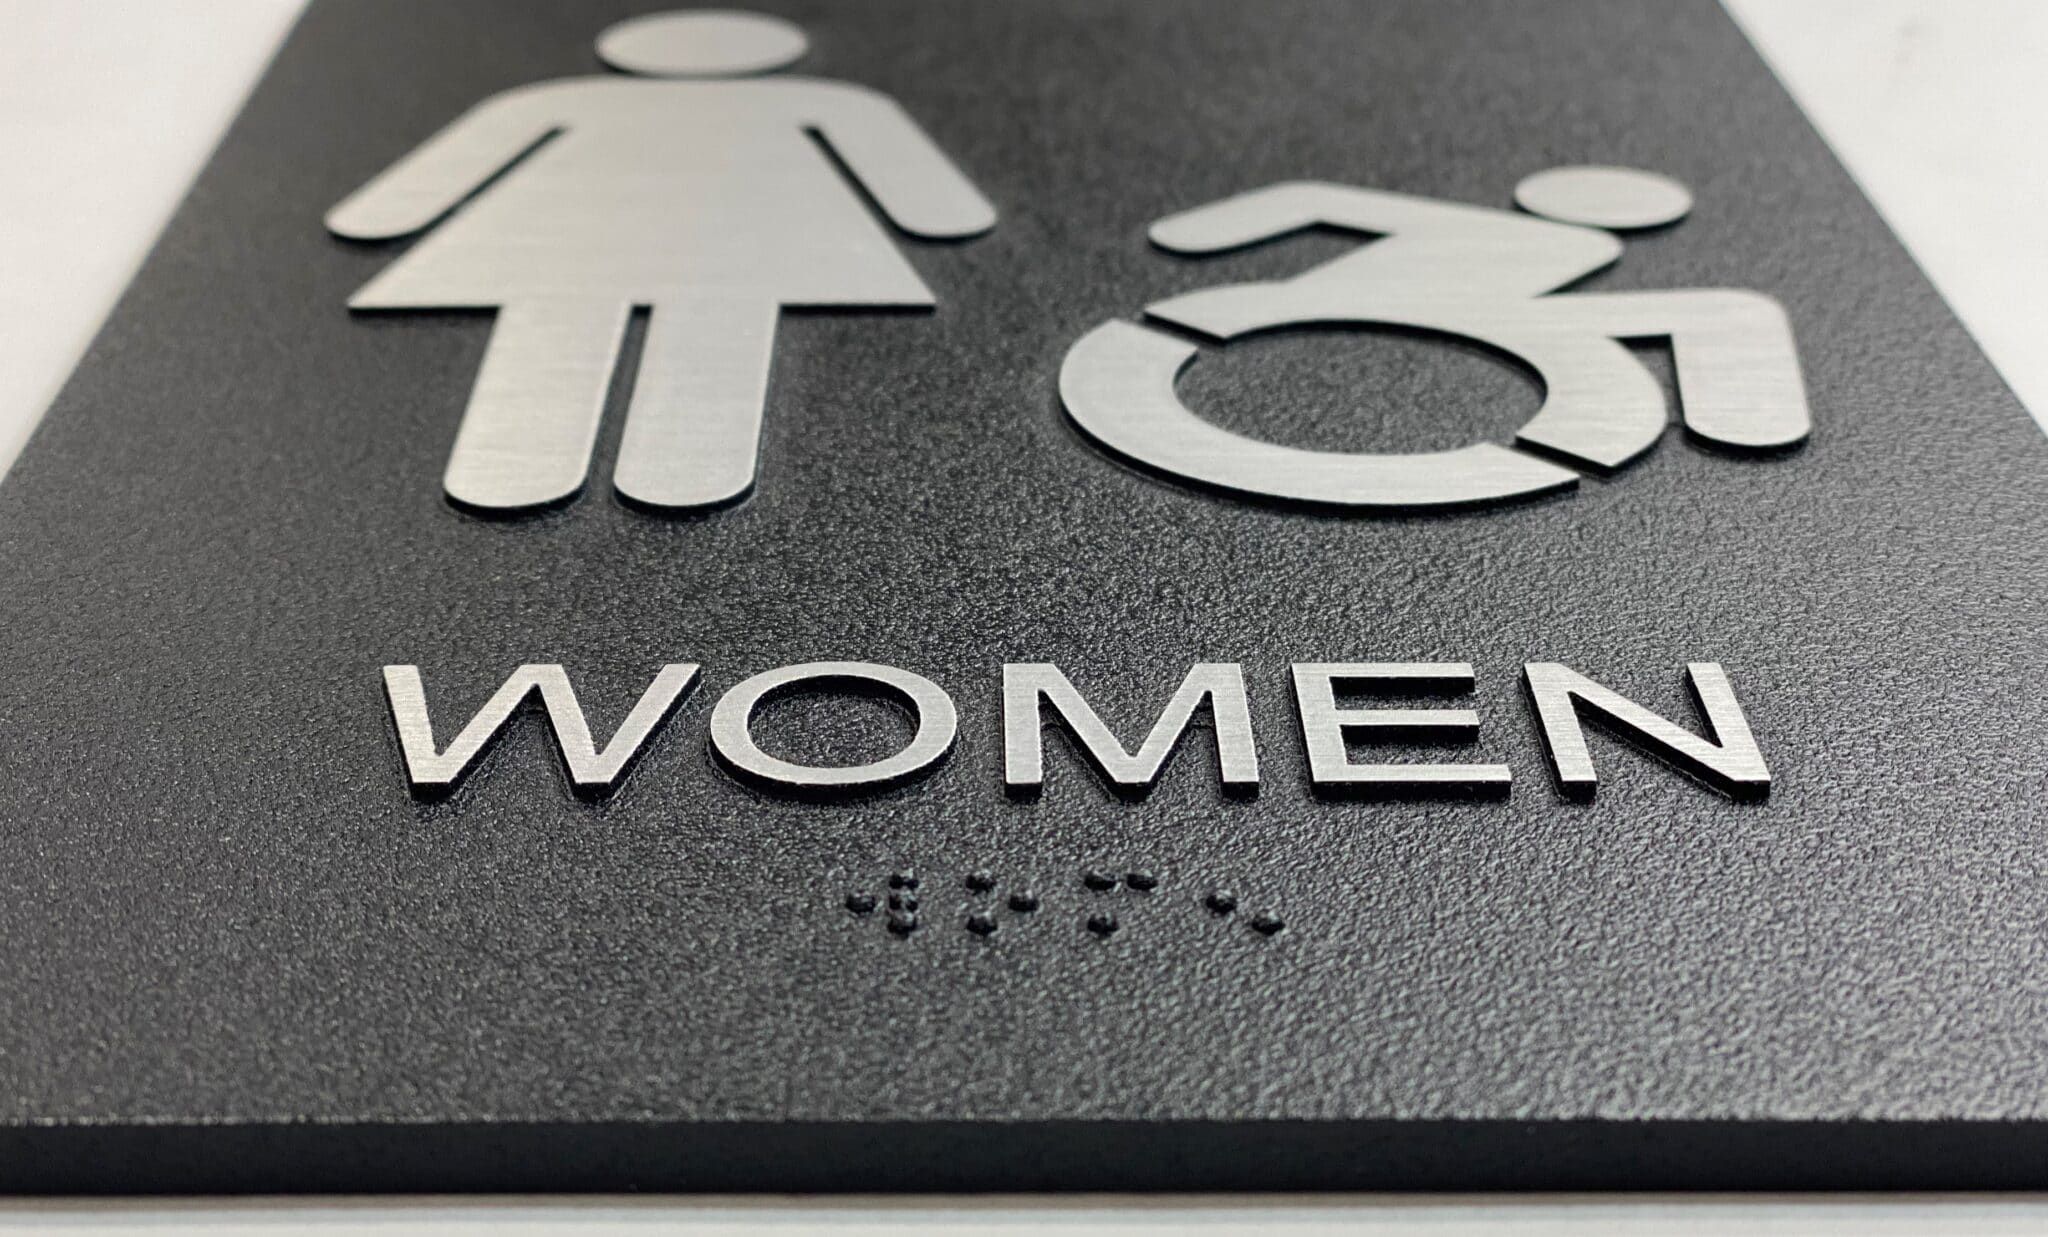 Exterior Womens Restroom Sign, braille close up